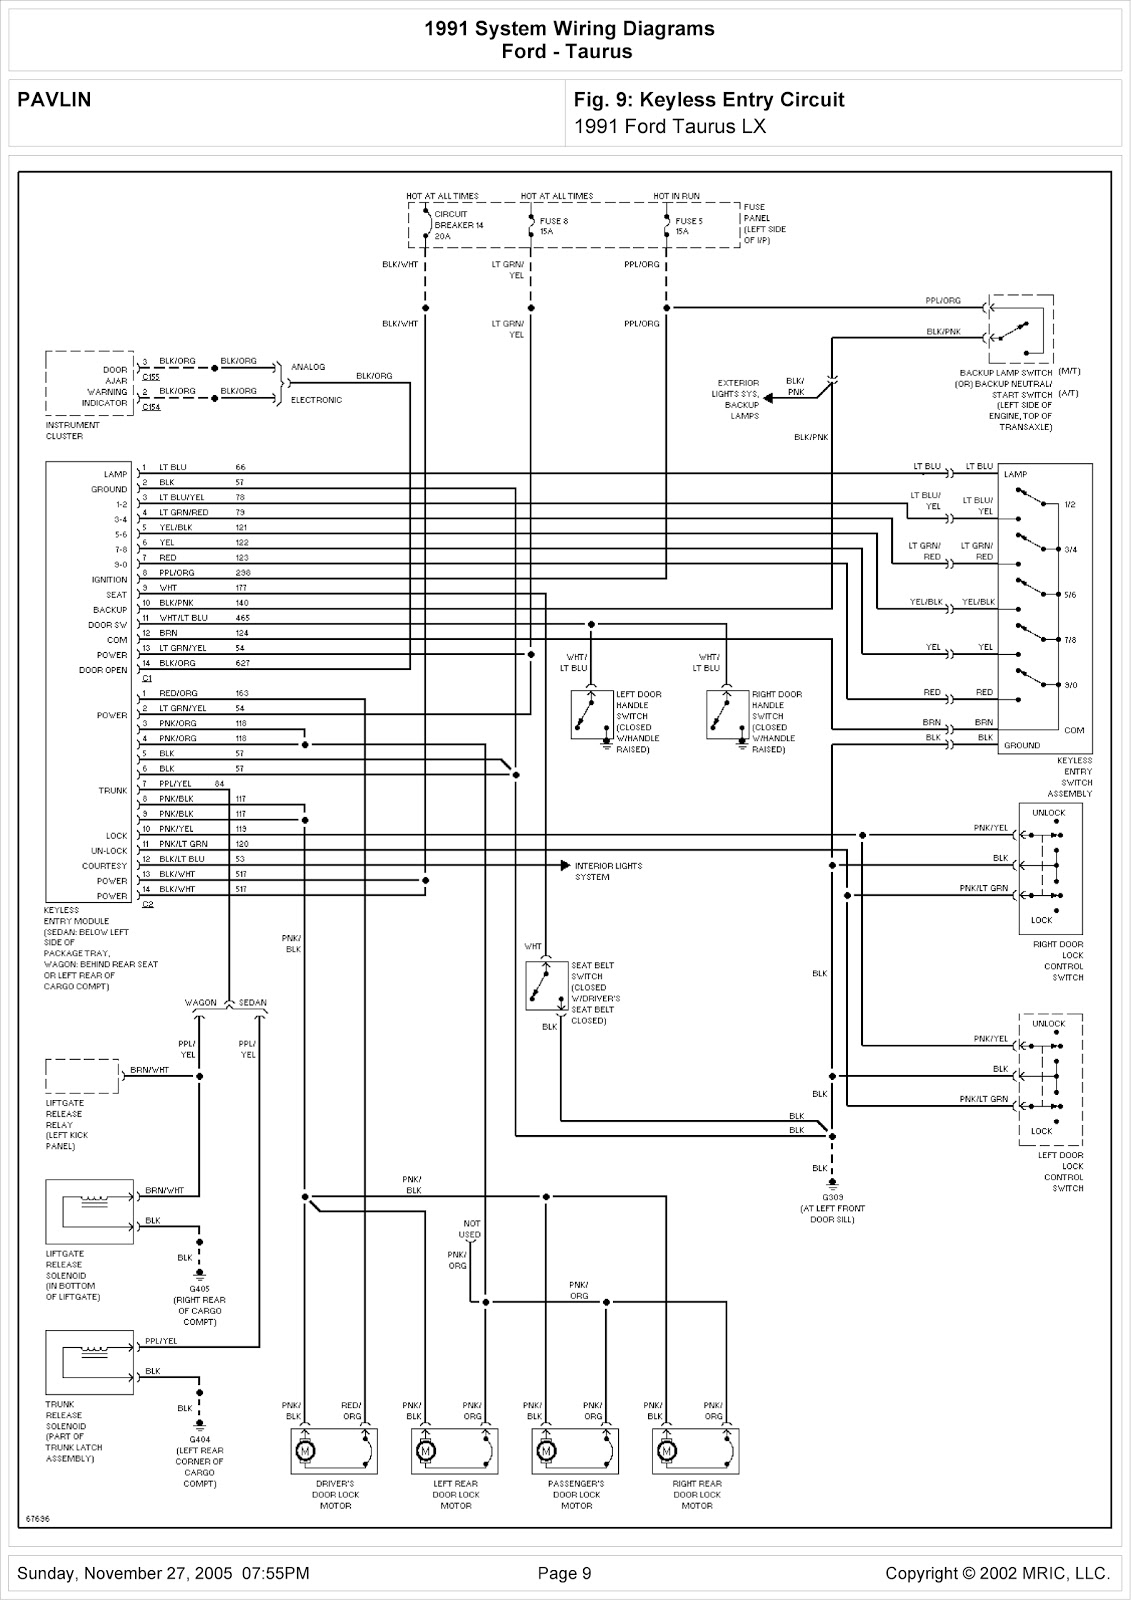 1991 ford taurus lx system wiring diagram for keyless ... 2011 ford taurus engine diagram 2011 ford taurus wiring diagram #1